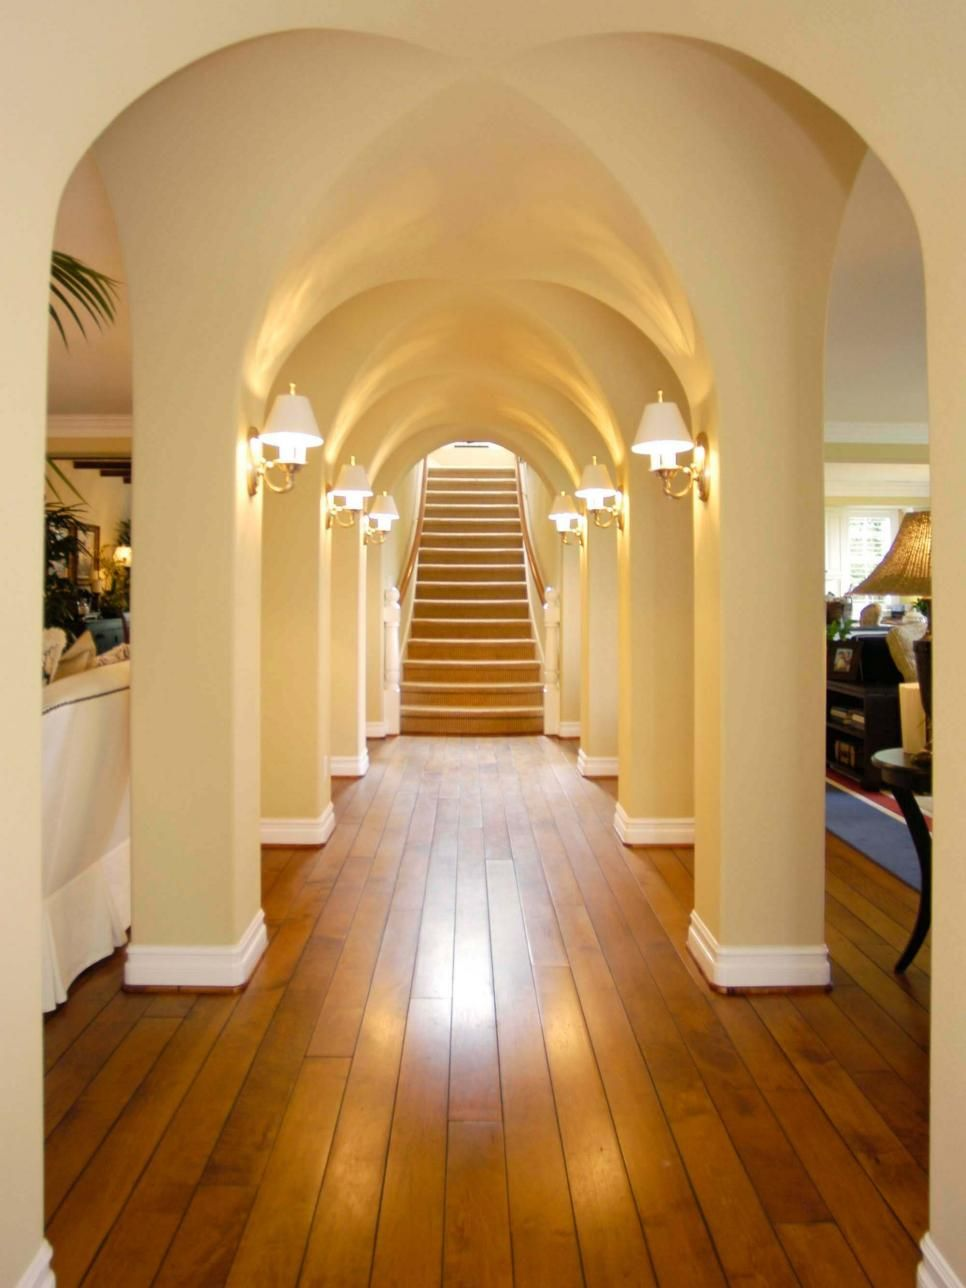 Entryway Lighting Designs | Corridor, Wall sconces and Staircases